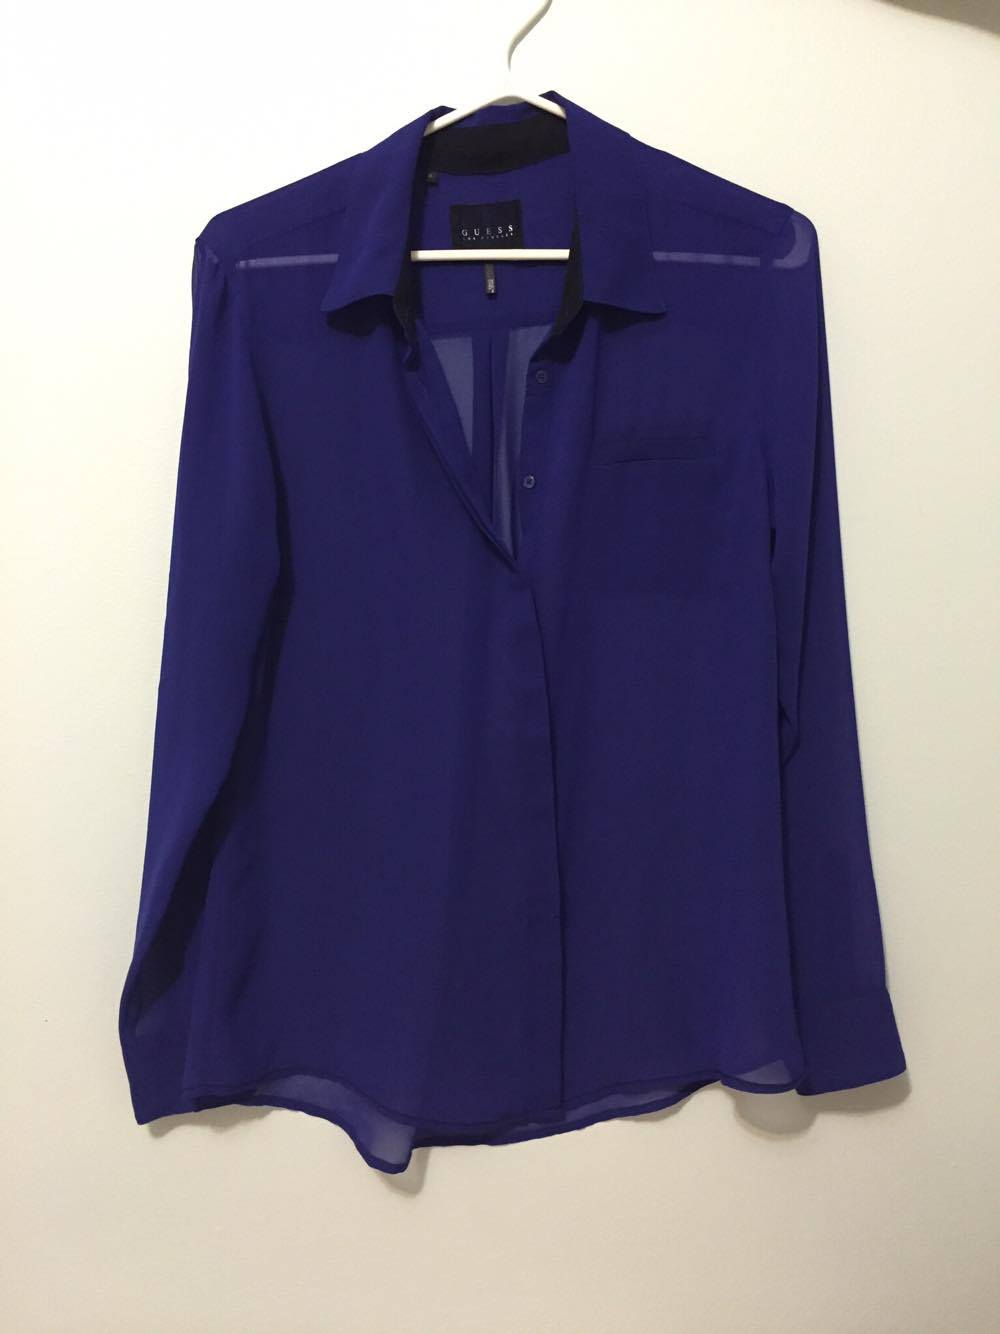 GUESS indigo/purple chiffon blouse